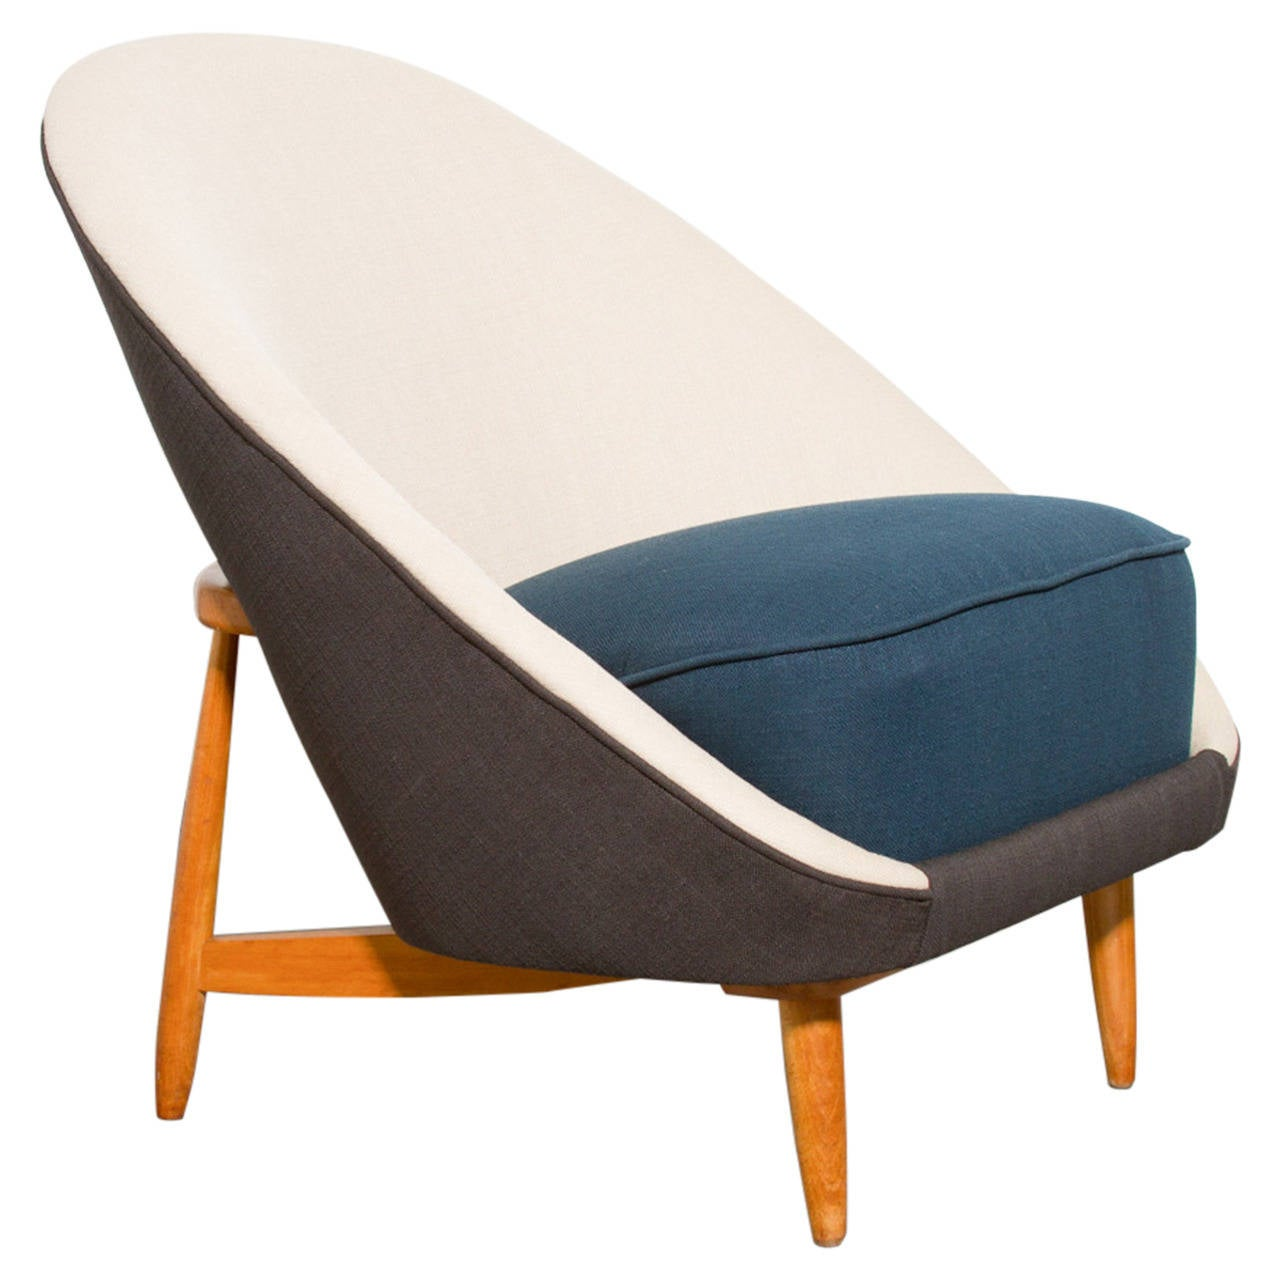 Theo Ruth For Artifort Model 115 Small Lounge Chair